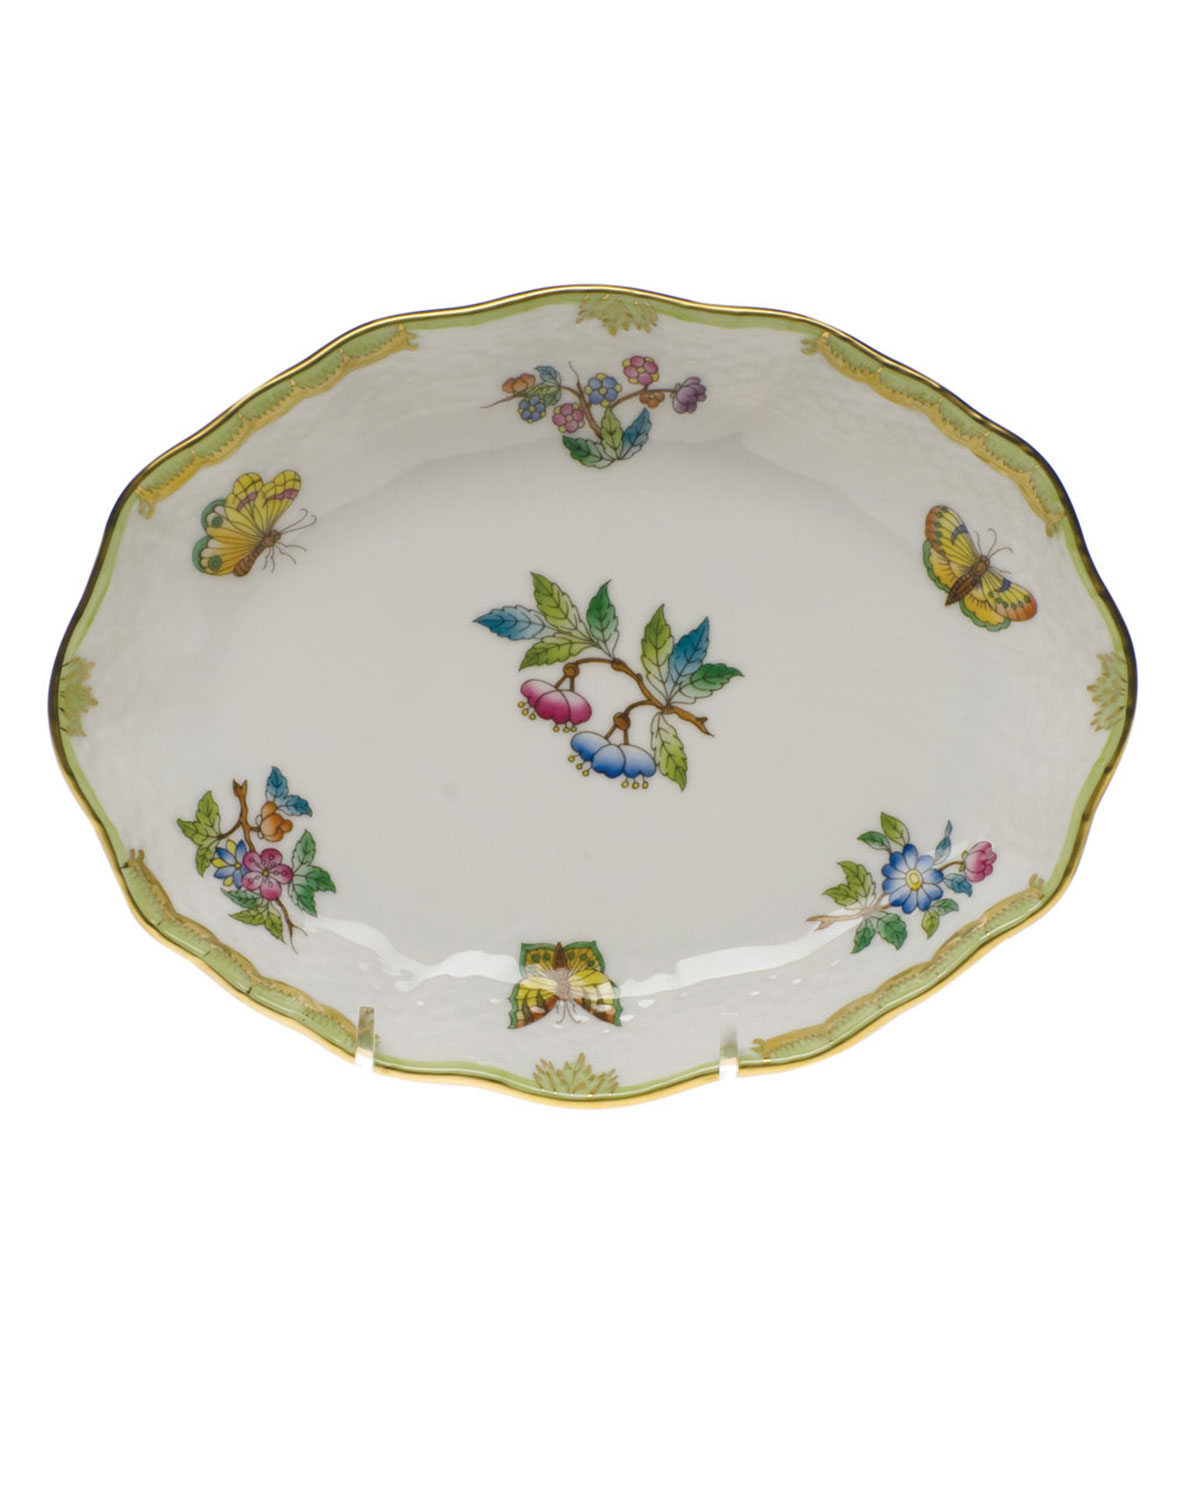 Herend QUEEN VICTORIA GREEN SMALL OVAL DISH